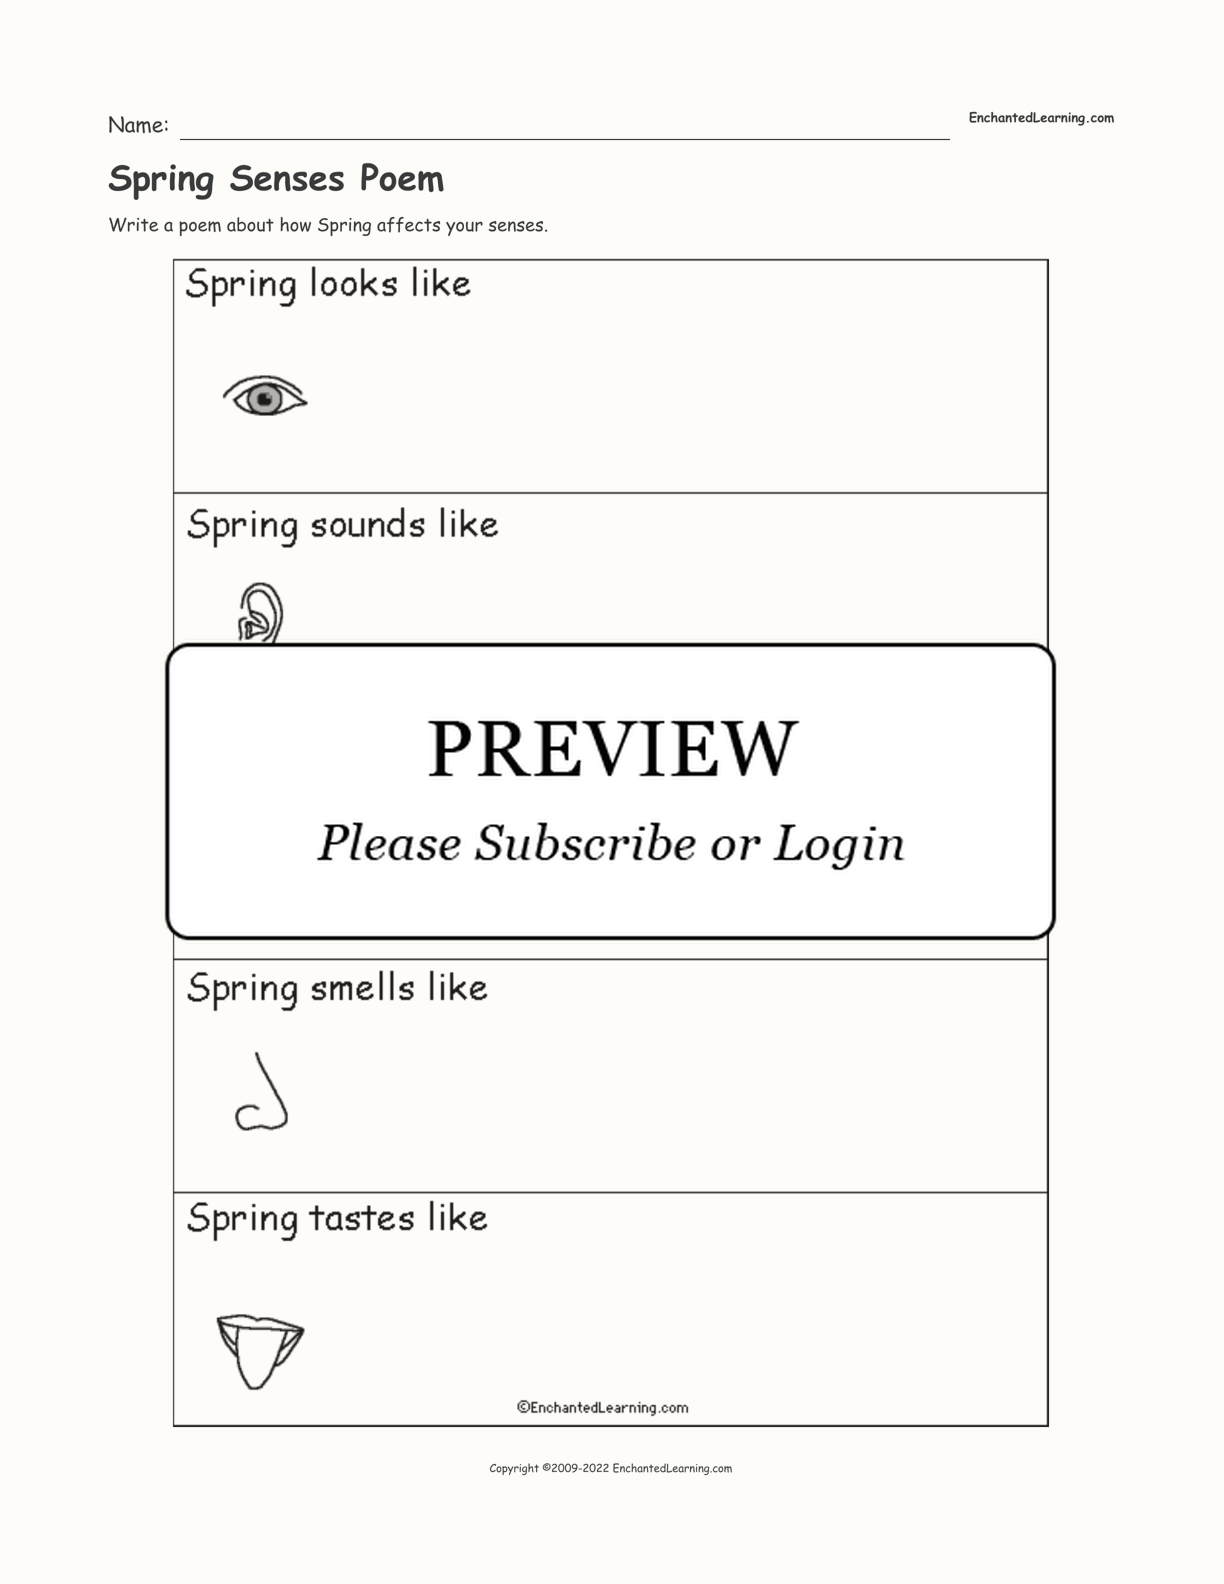 Spring Senses Poem interactive worksheet page 1